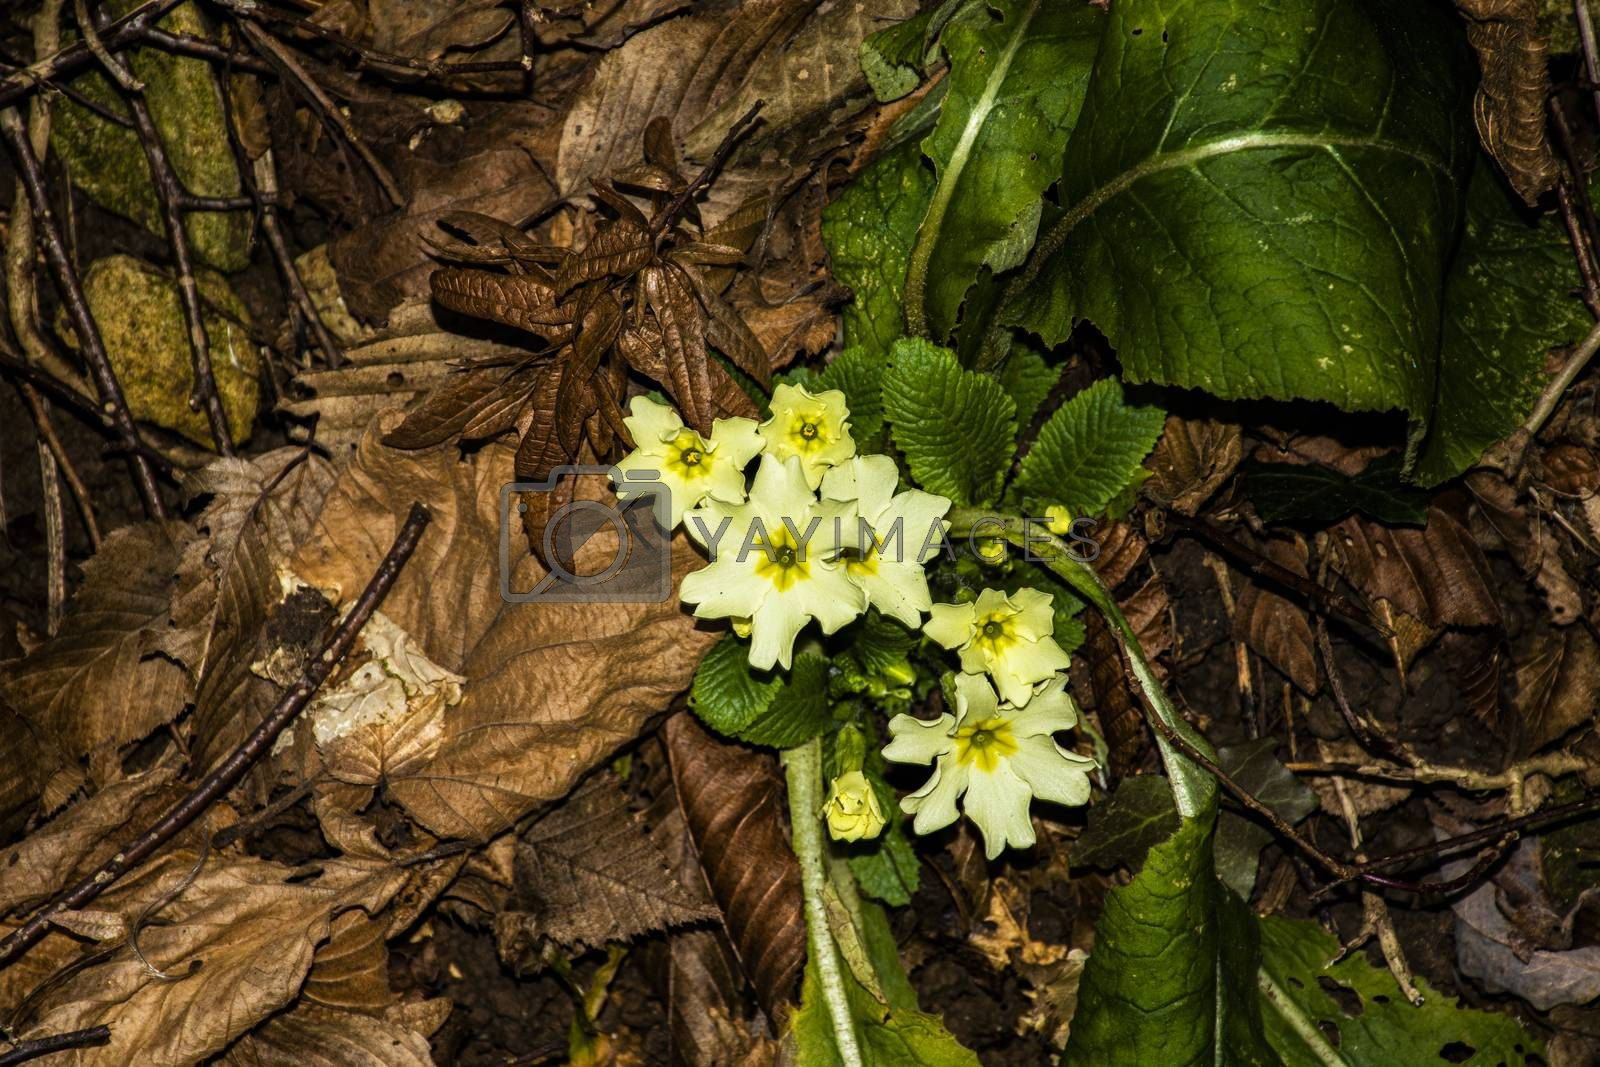 close-up of yellow primroses on the mantle of brown leaves of the undergrowth in the Vicenza hills